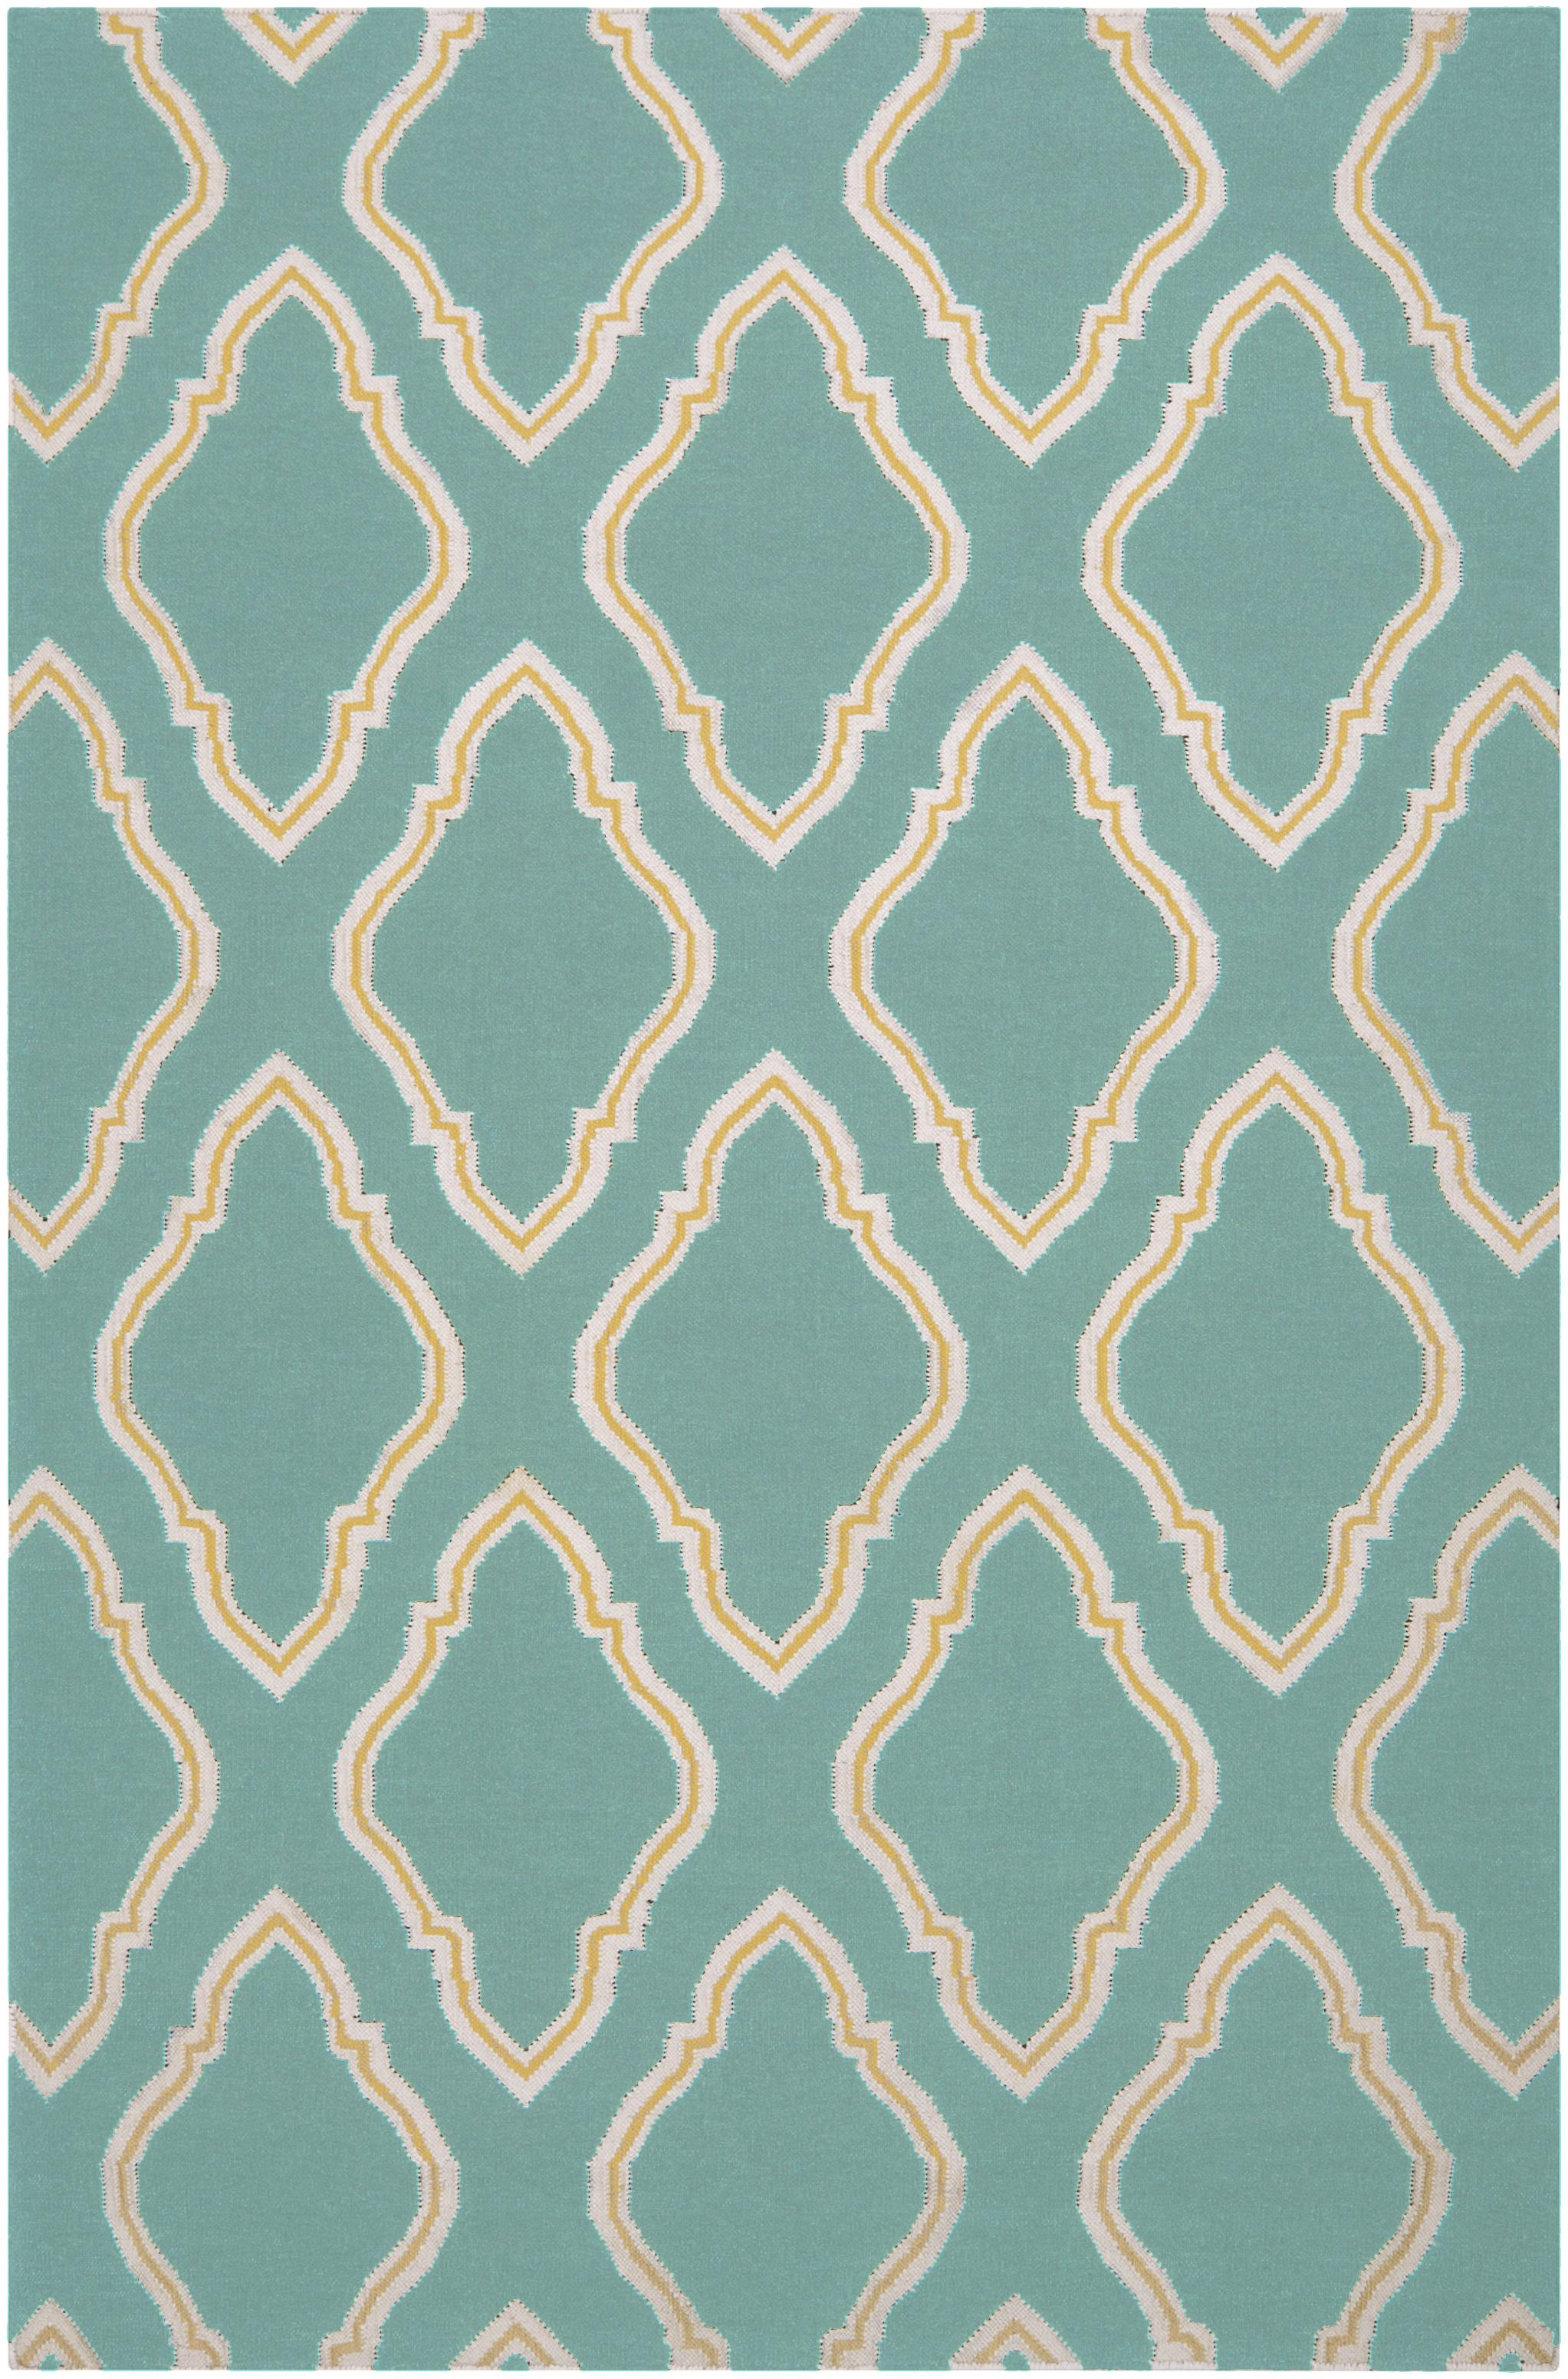 Surya Rugs Fallon 2' x 3' - Item Number: FAL1097-23